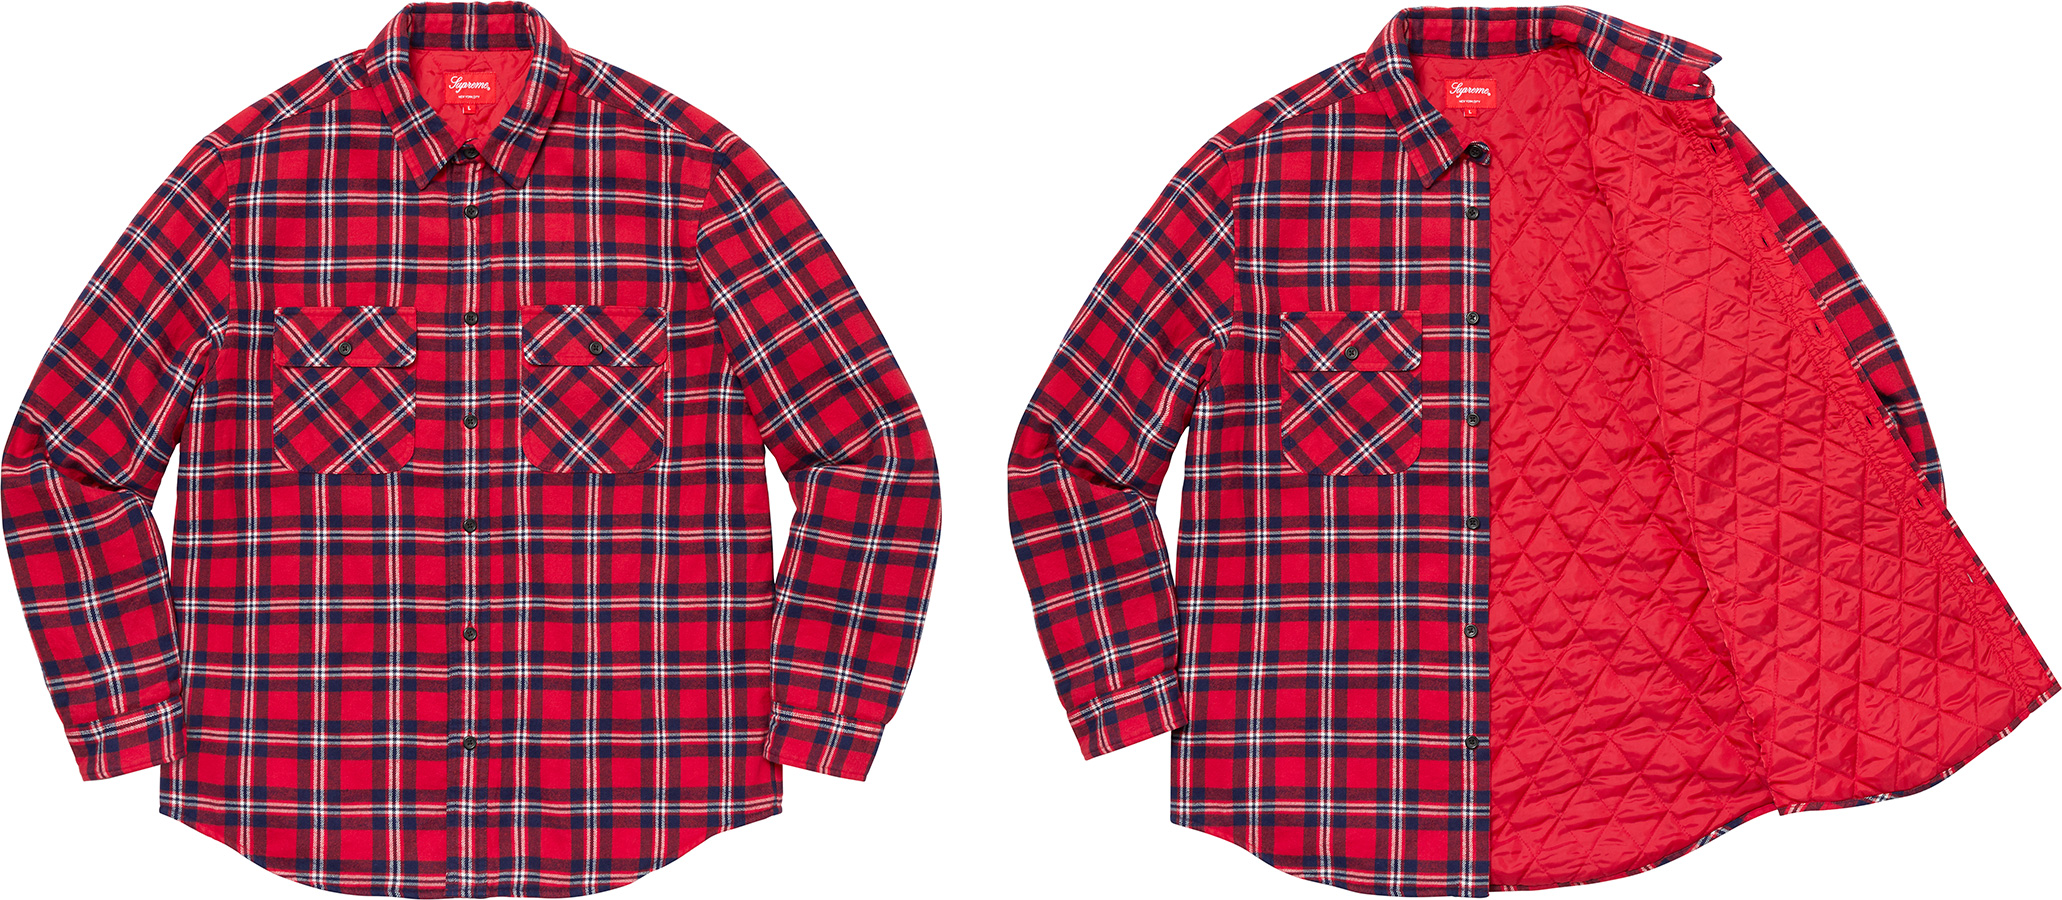 supreme-19aw-19fw-fall-winter-arc-logo-quilted-flannel-shirt